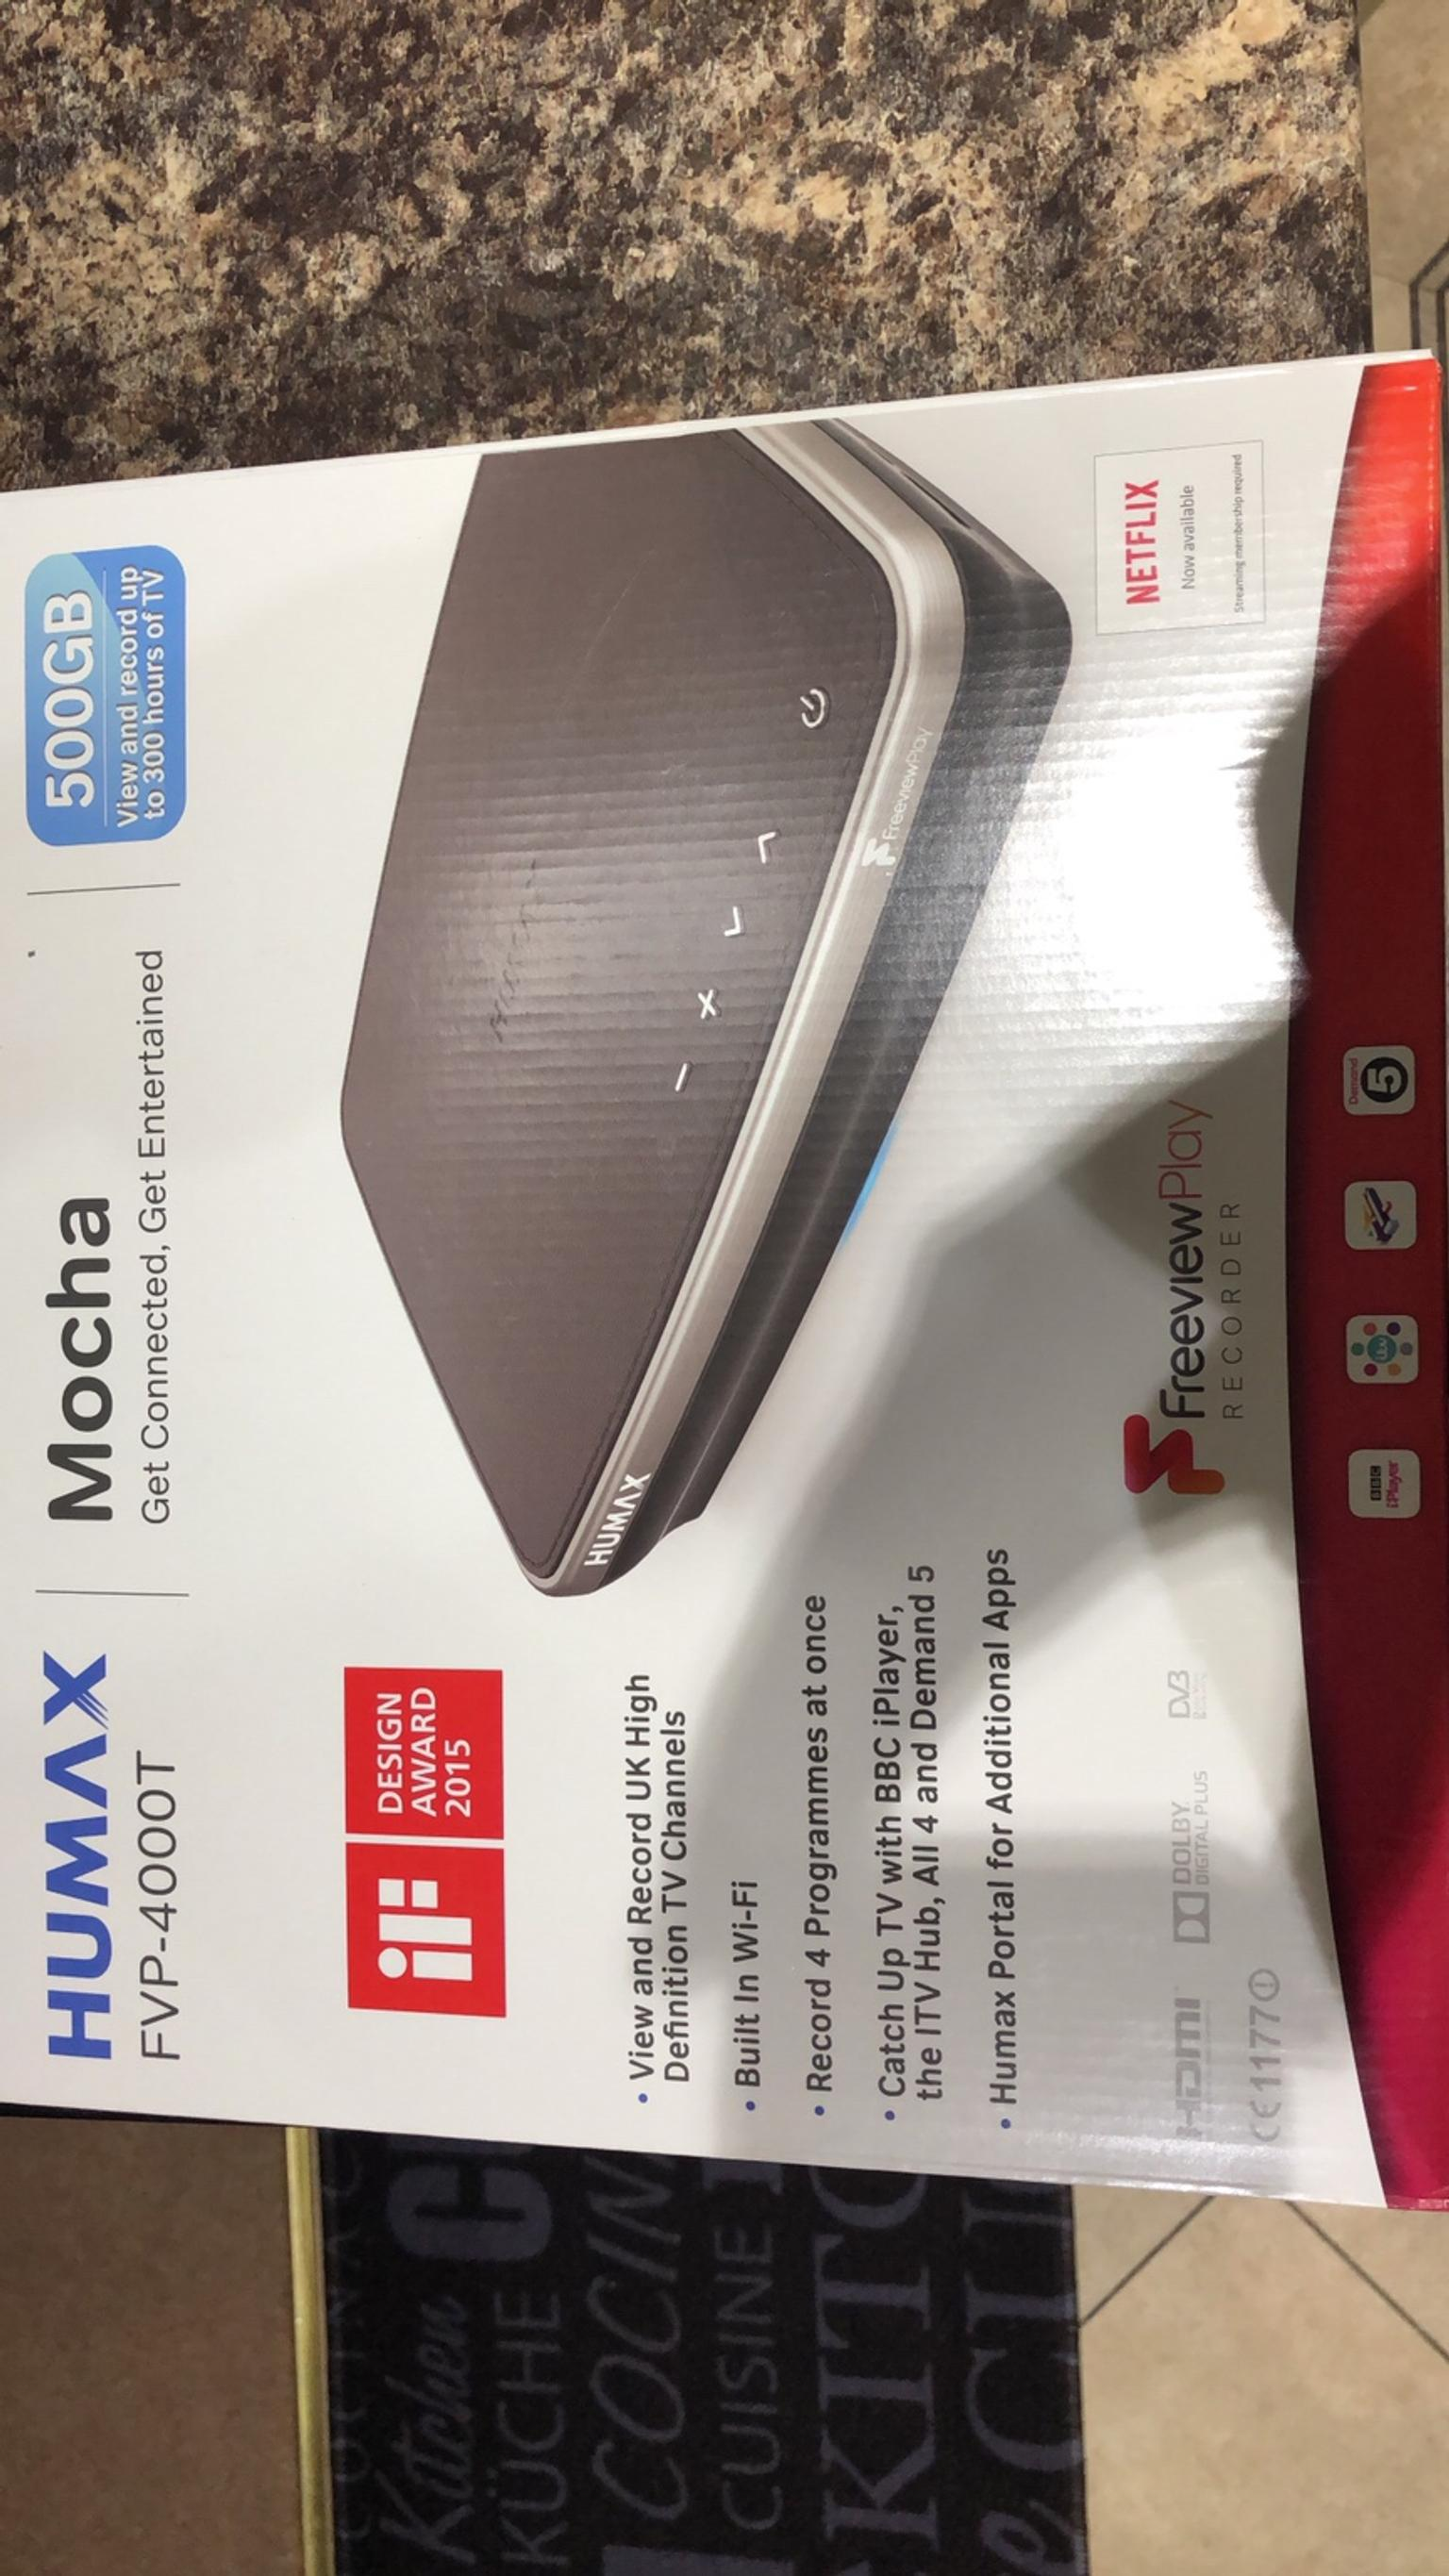 Humax Freeview Player Recorder 500GB